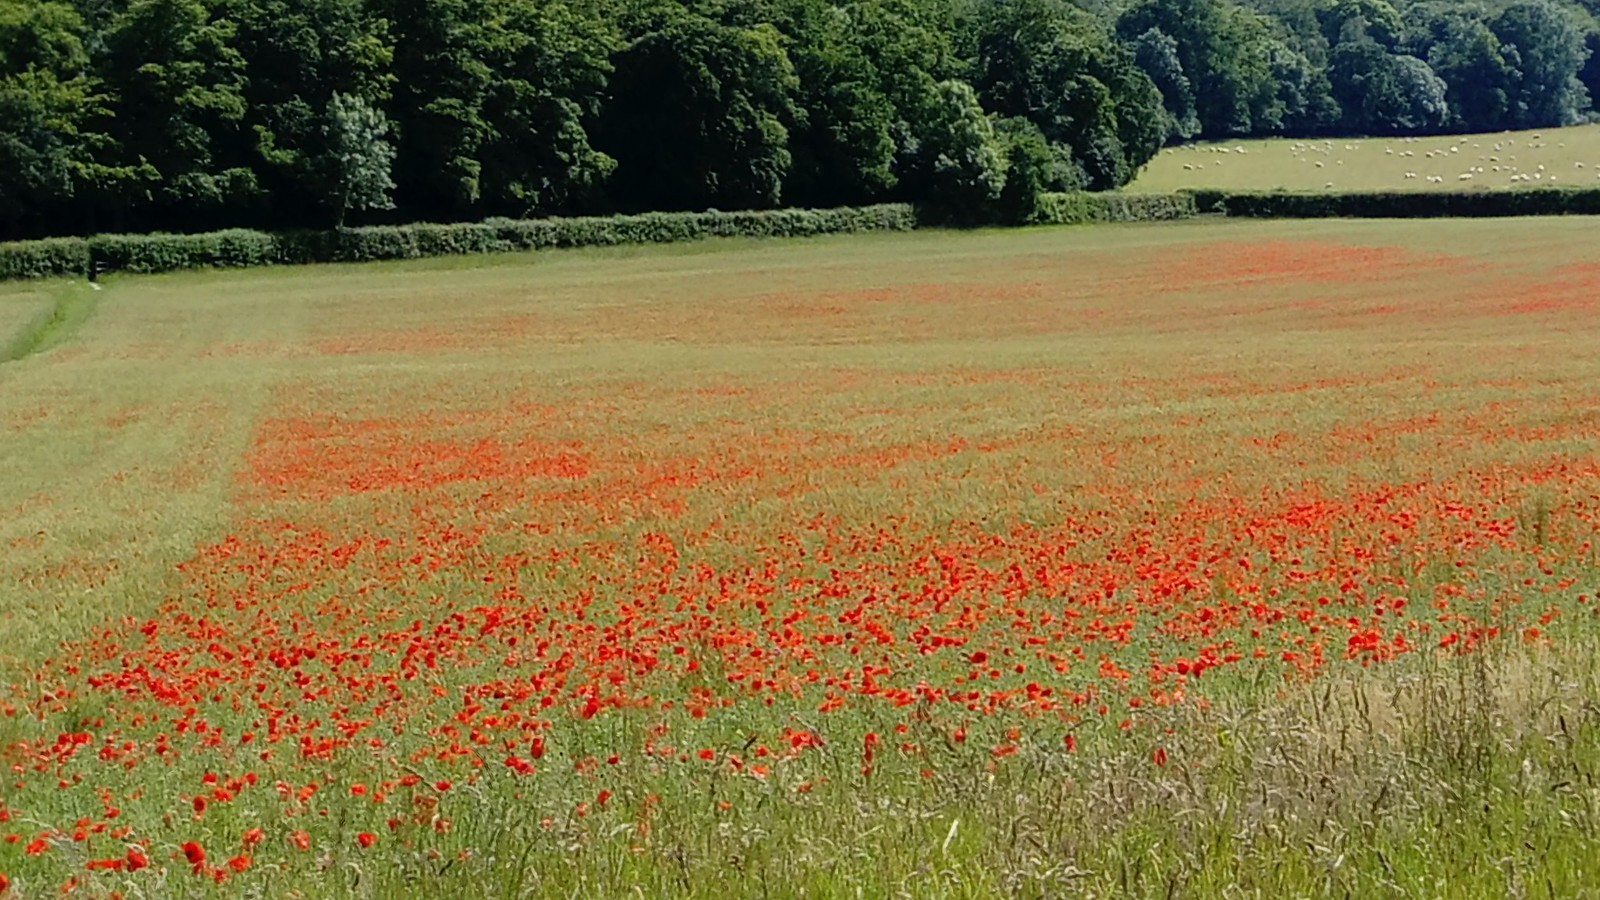 Poppy-filled field near Turville SWC Walk 223 Henley-on-Thames Circular (via Turville)